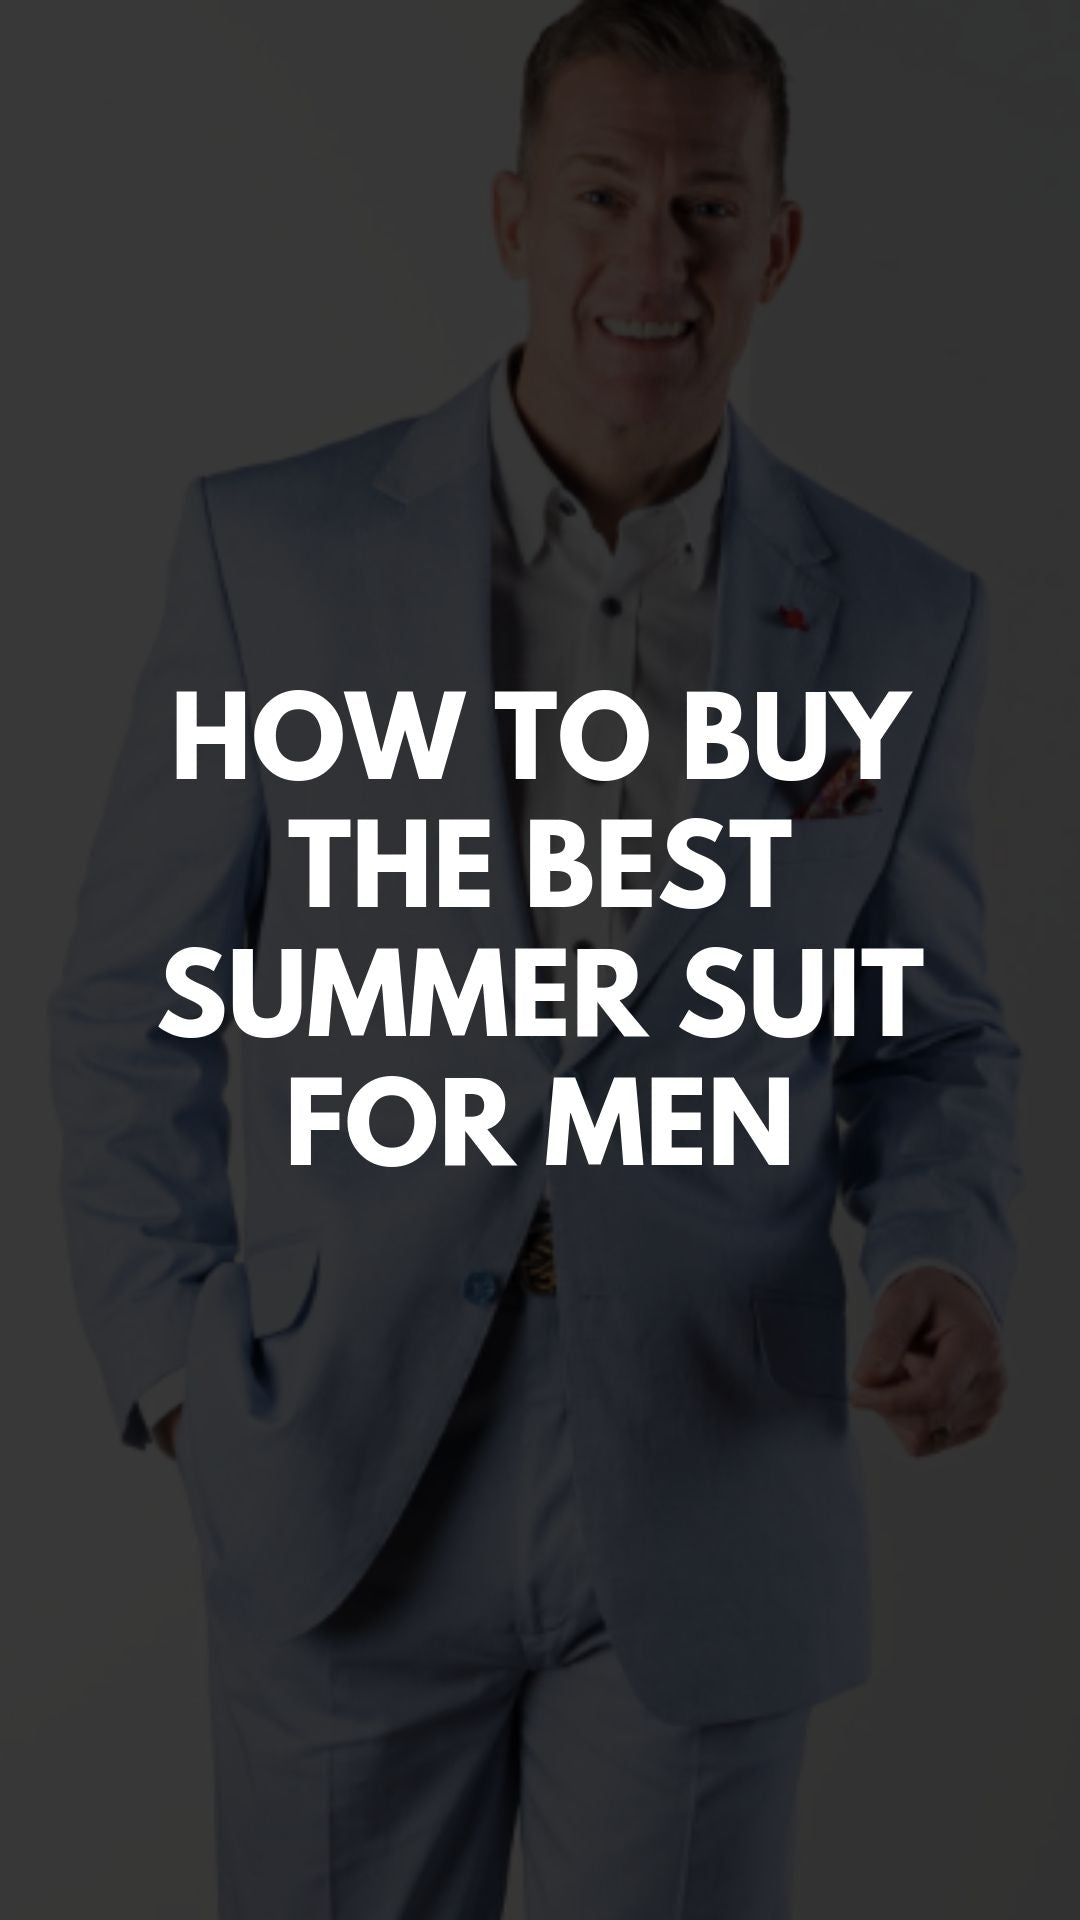 What to Look for in Summer Suits